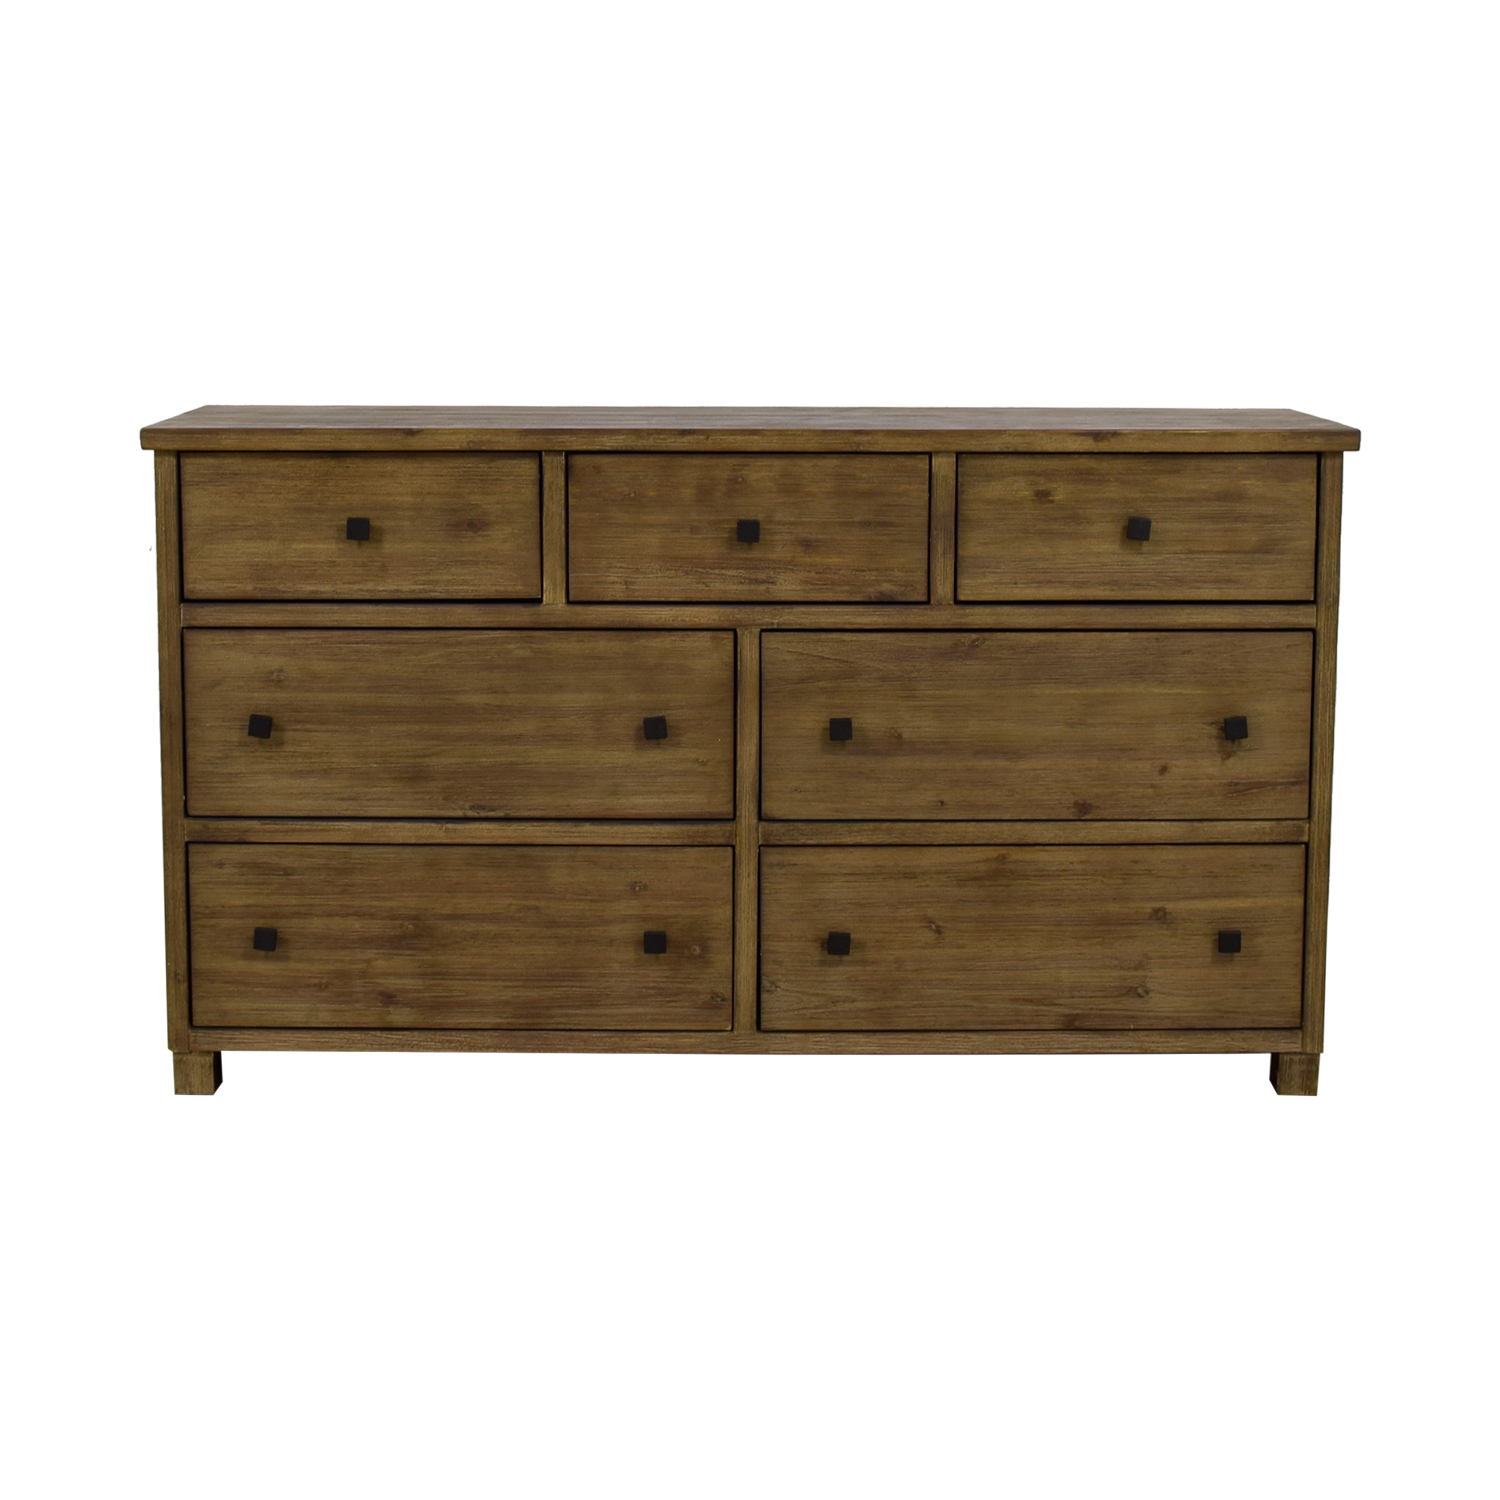 Macy's Canyon Seven Drawer Dresser sale